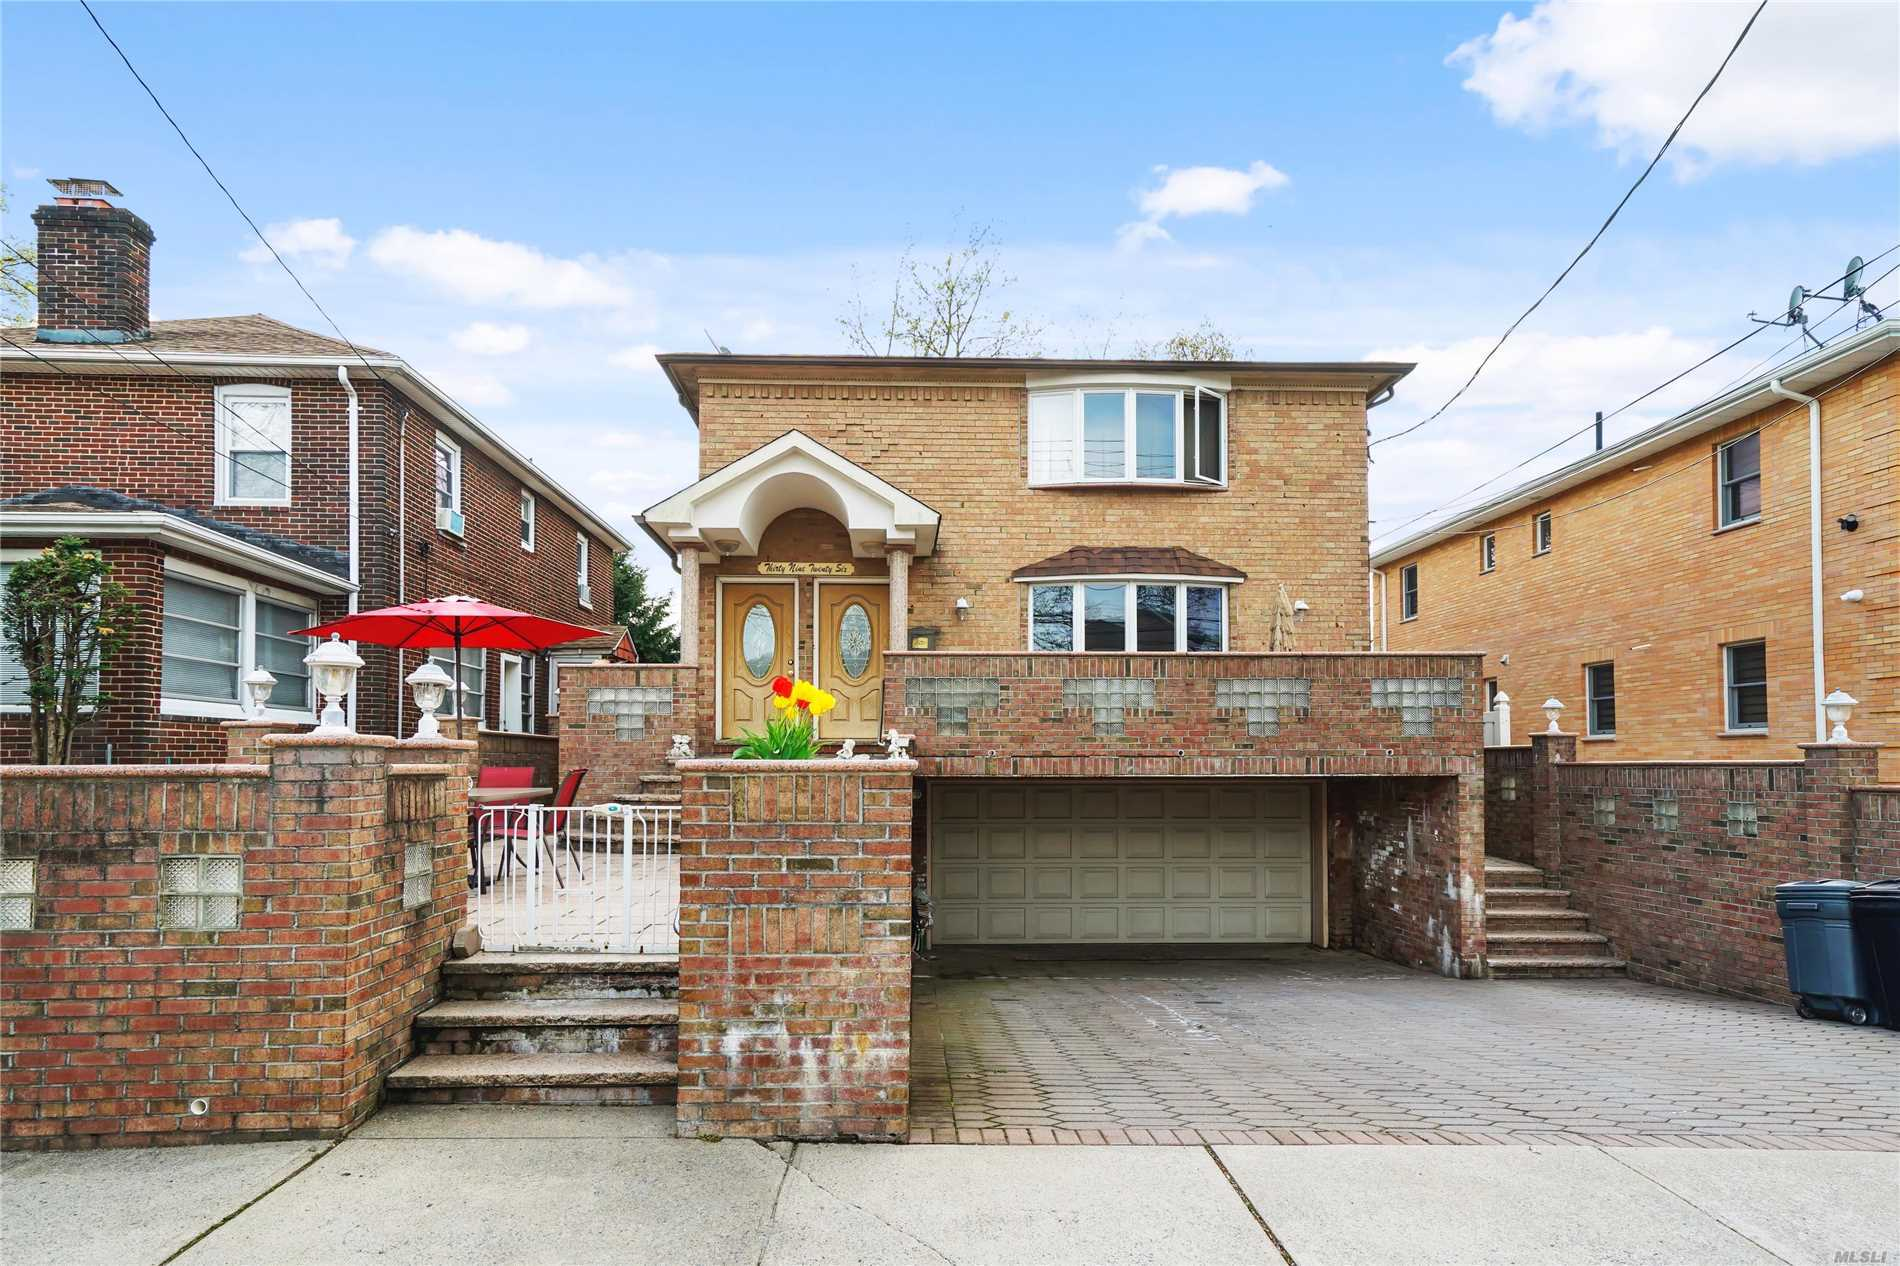 Come See This Large, Beautifully Maintained Brick 2 Family Home In The Heart Of Bayside! This 5 Bedroom, 4.5 Bath House Has A Finished Walk In Basement ... 2 Bedroom, 1.5 Bath Over 3 Bedroom, 2 Bath ... Large Backyard With Pool ... Close To LIRR ... Fantastic Schools ... Call For More Details ...